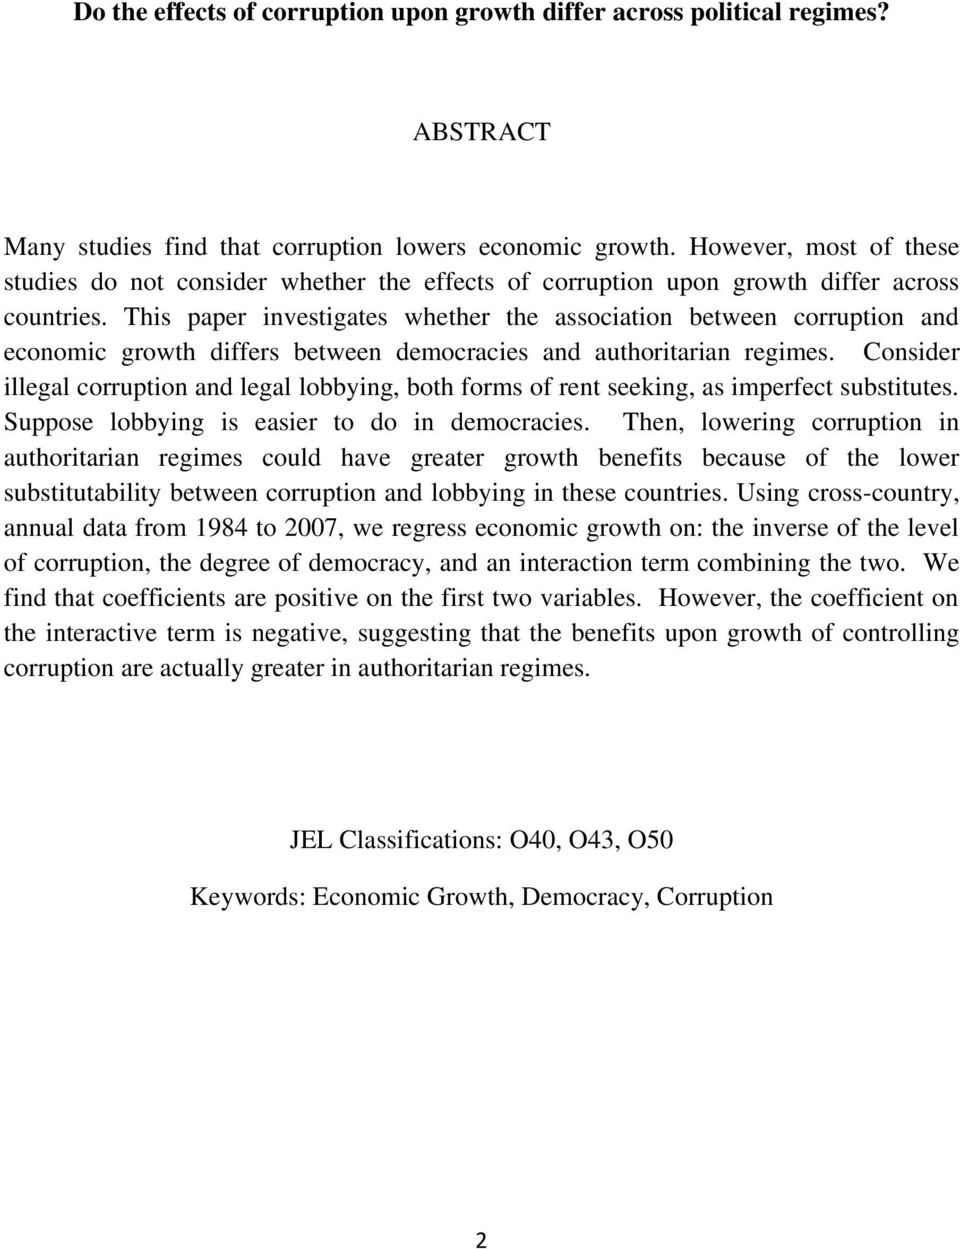 This paper investigates whether the association between corruption and economic growth differs between democracies and authoritarian regimes.